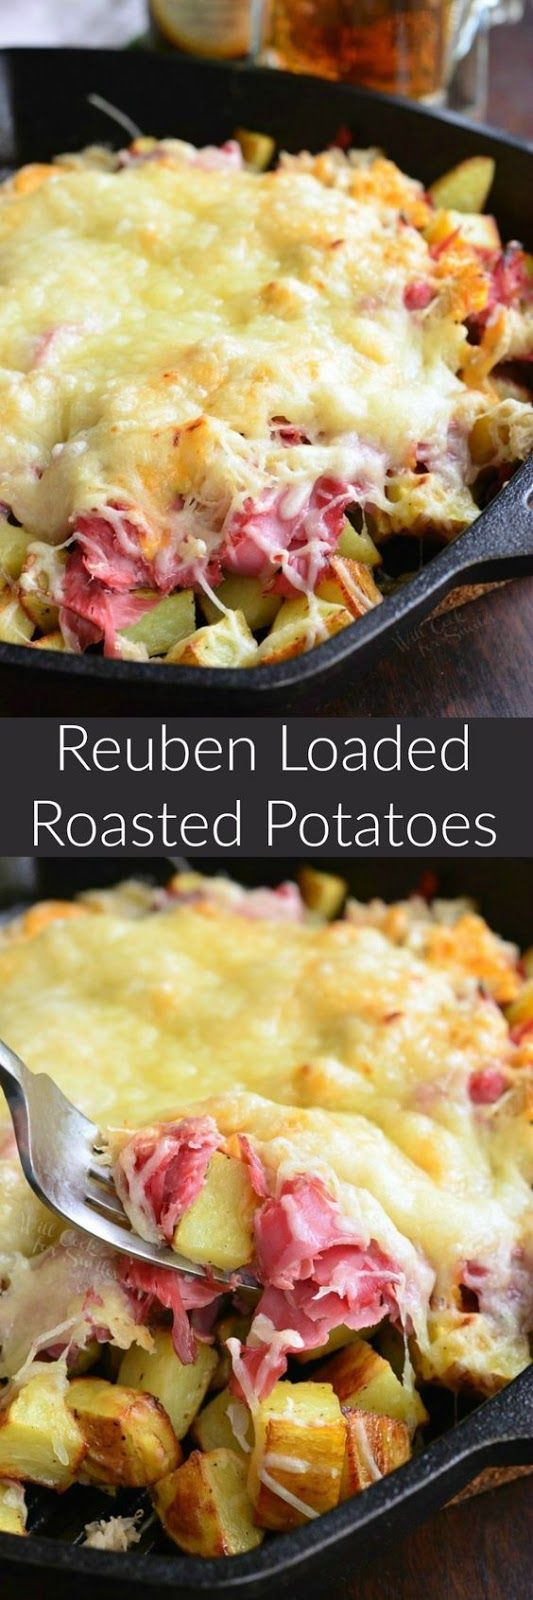 REUBEN LOADED ROASTED POTATOES | Cake And Food Recipe